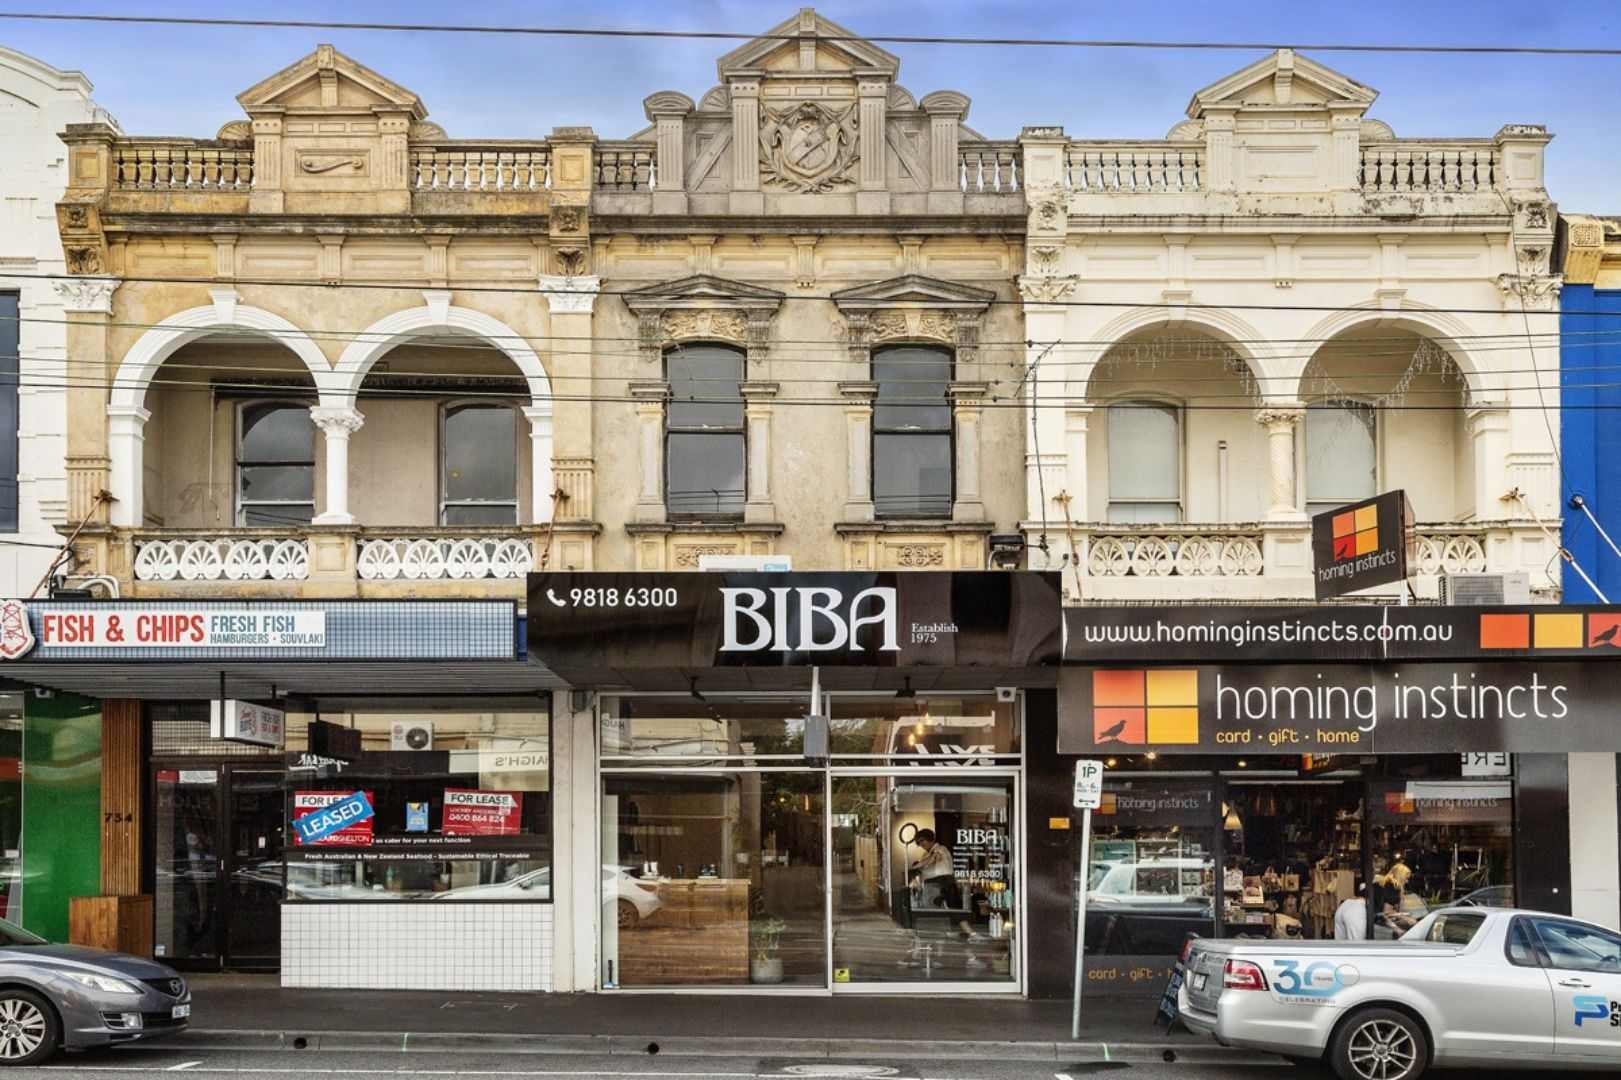 Exterior shot of the Homing Instincts shop on Glenferrie Rd Hawthorn